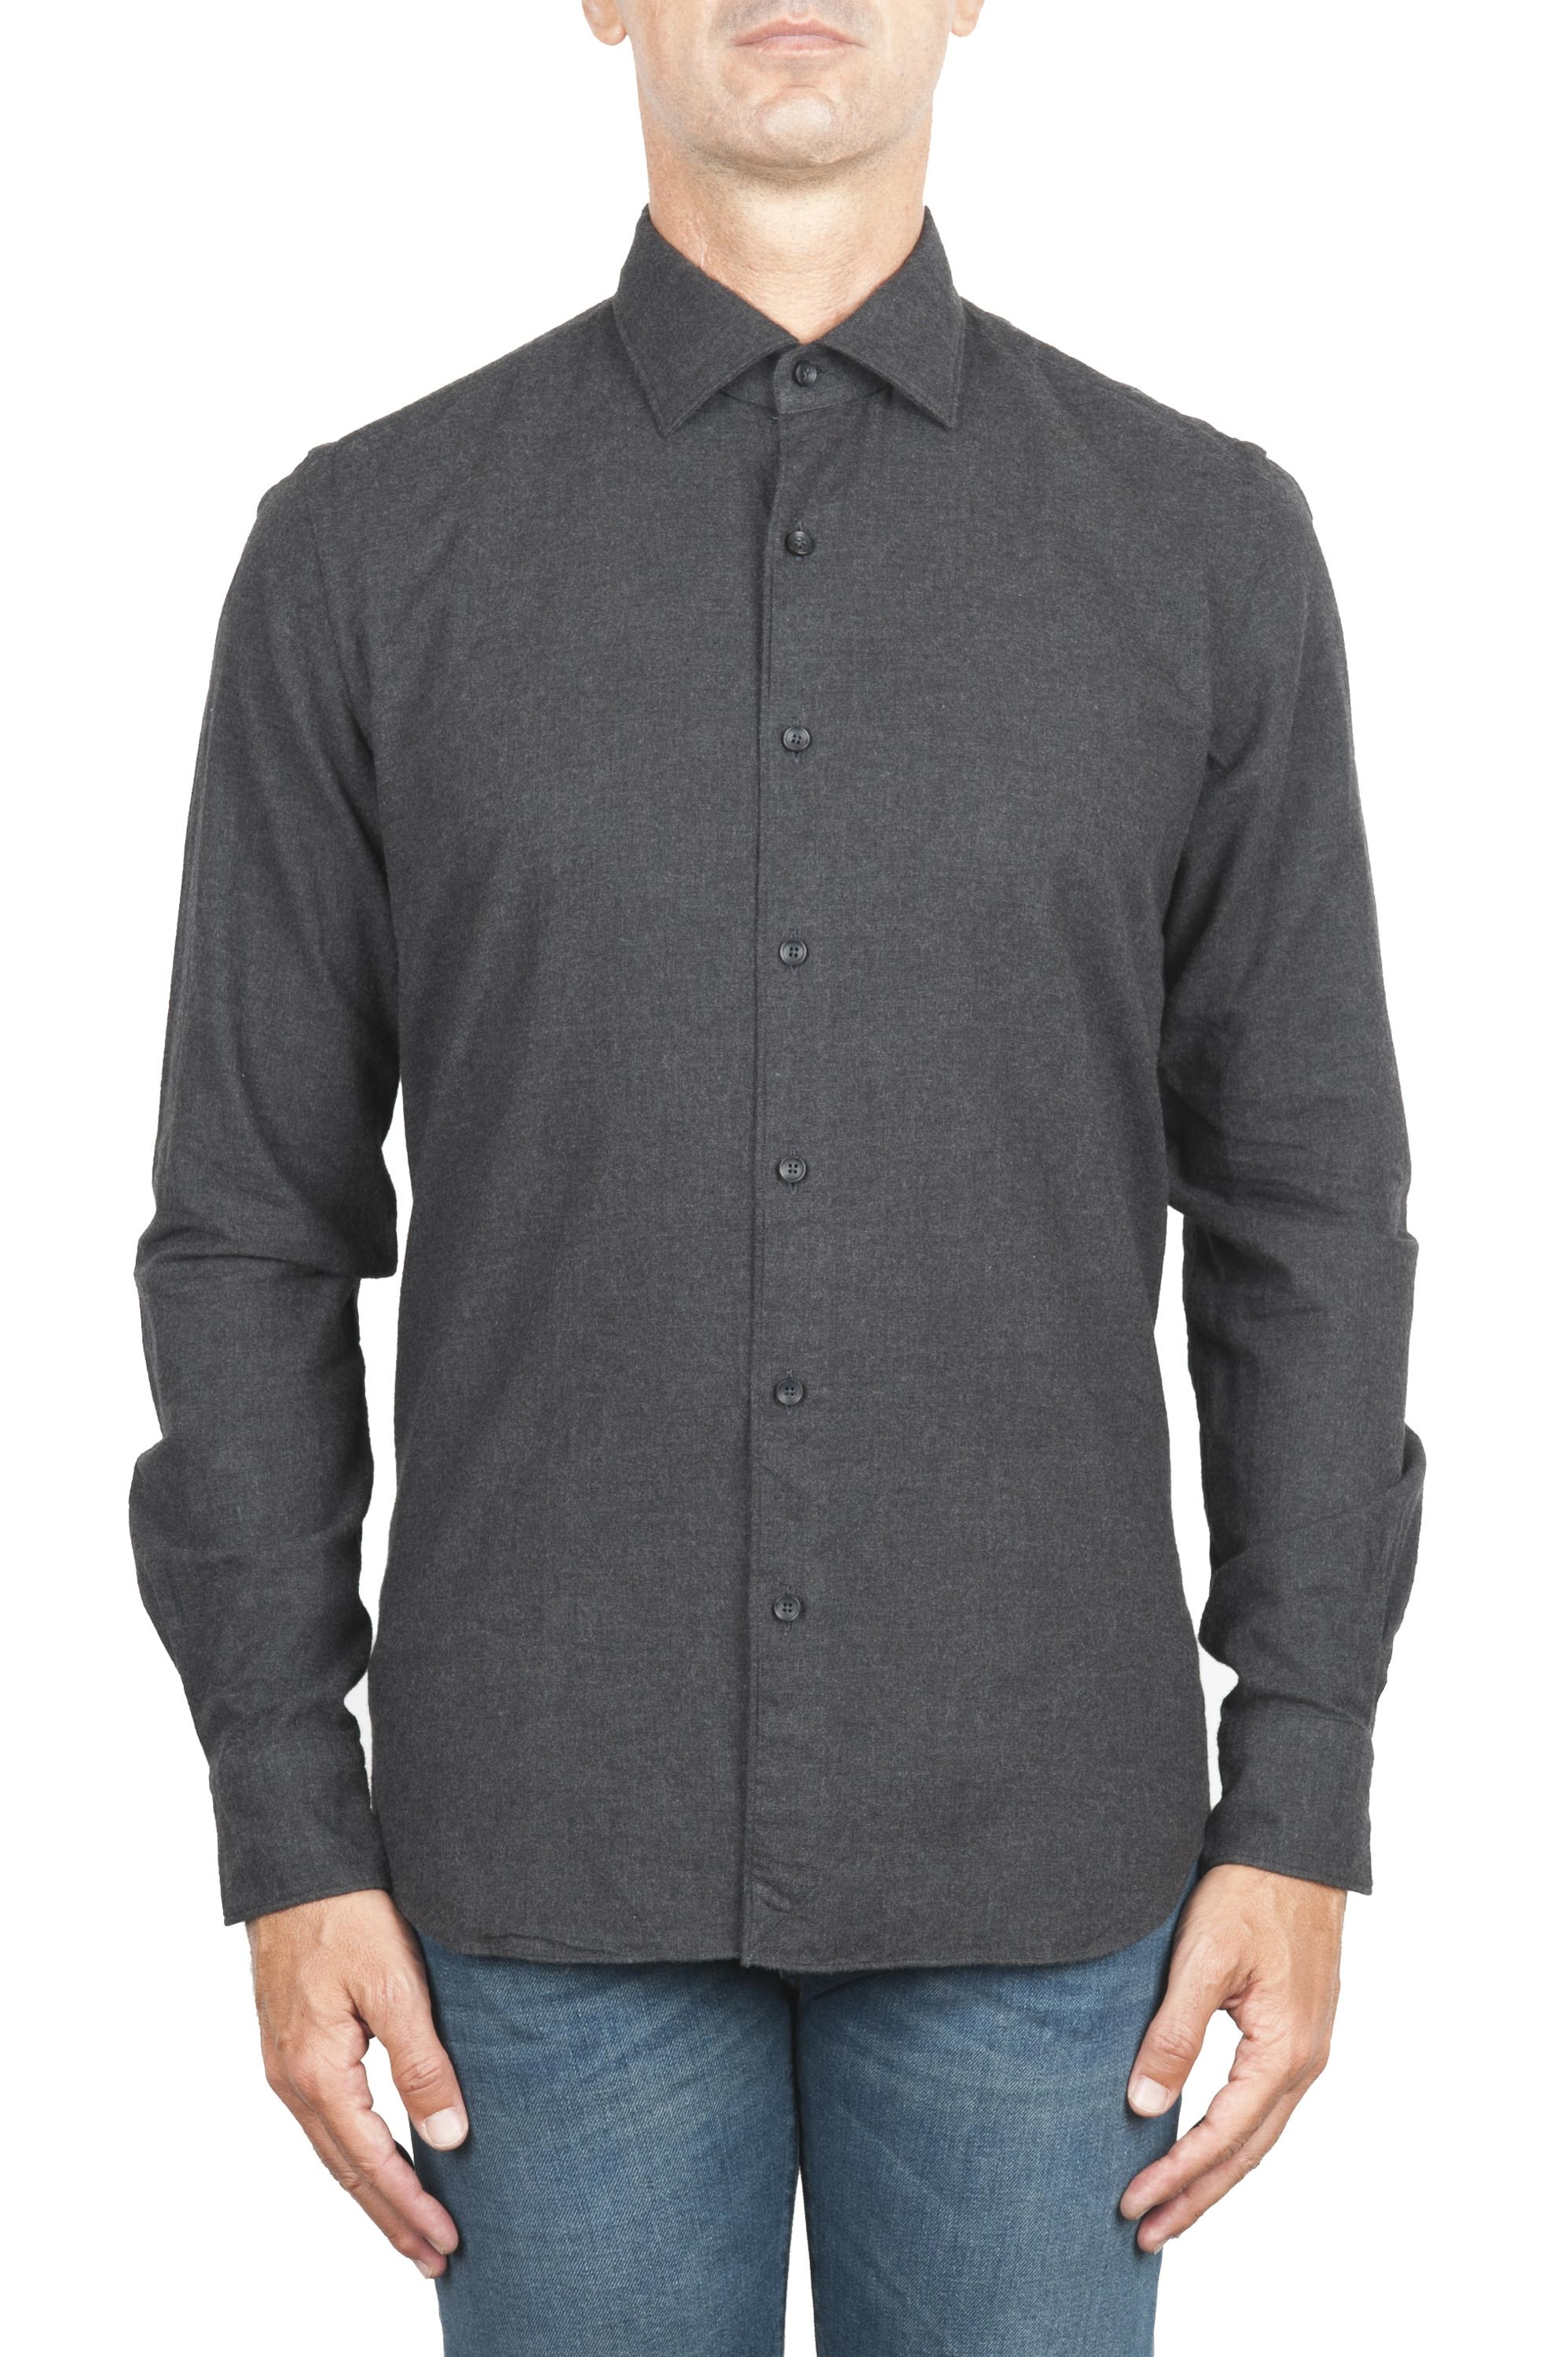 SBU 01311_19AW Plain soft cotton grey flannel shirt 01